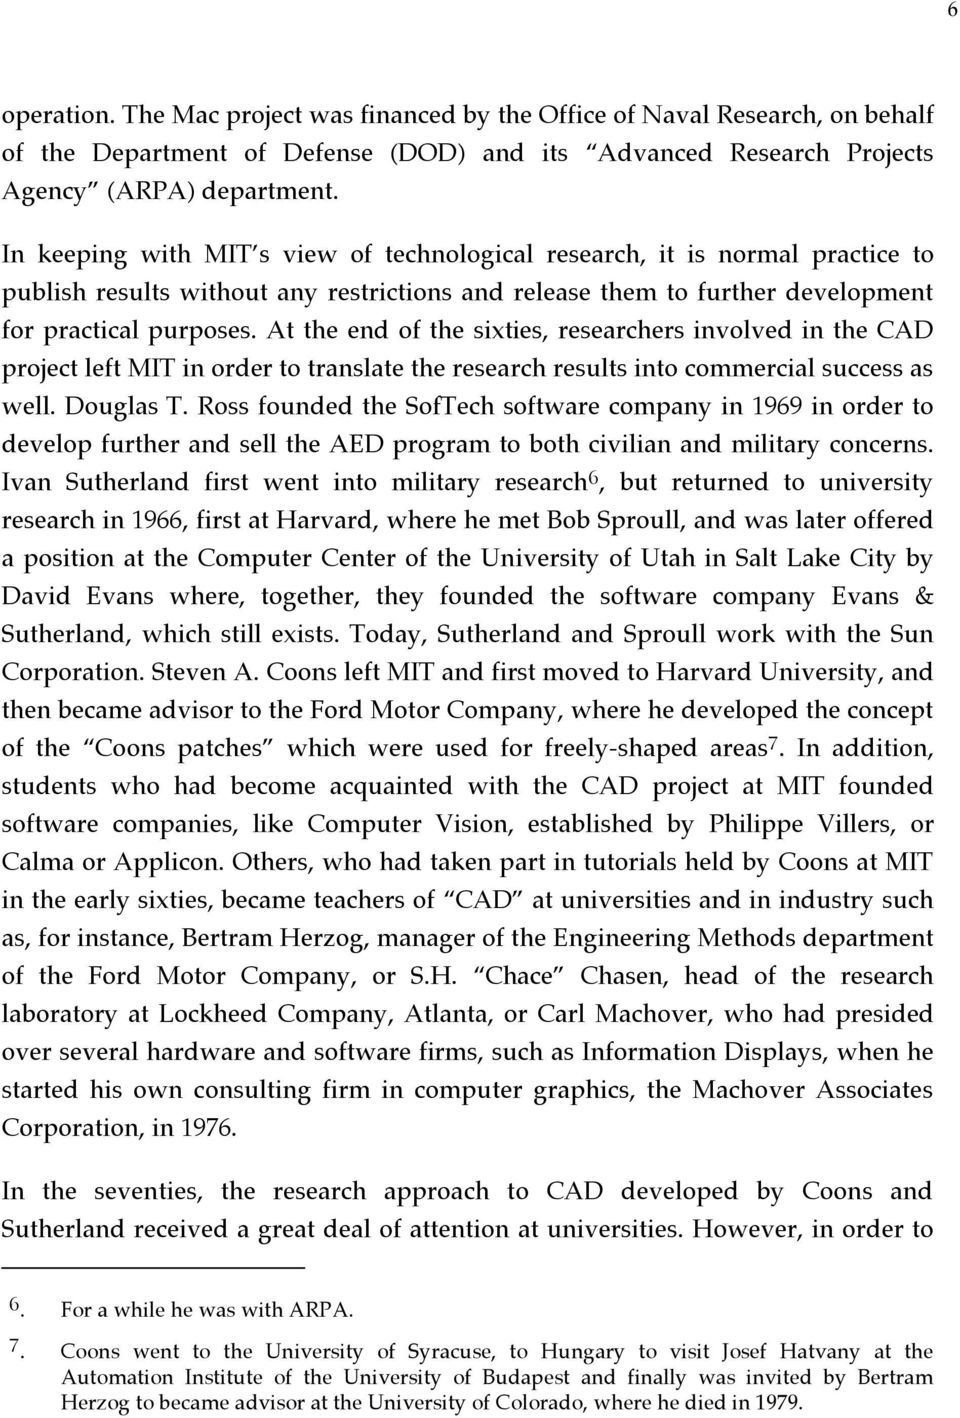 At the end of the sixties, researchers involved in the CAD project left MIT in order to translate the research results into commercial success as well. Douglas T.